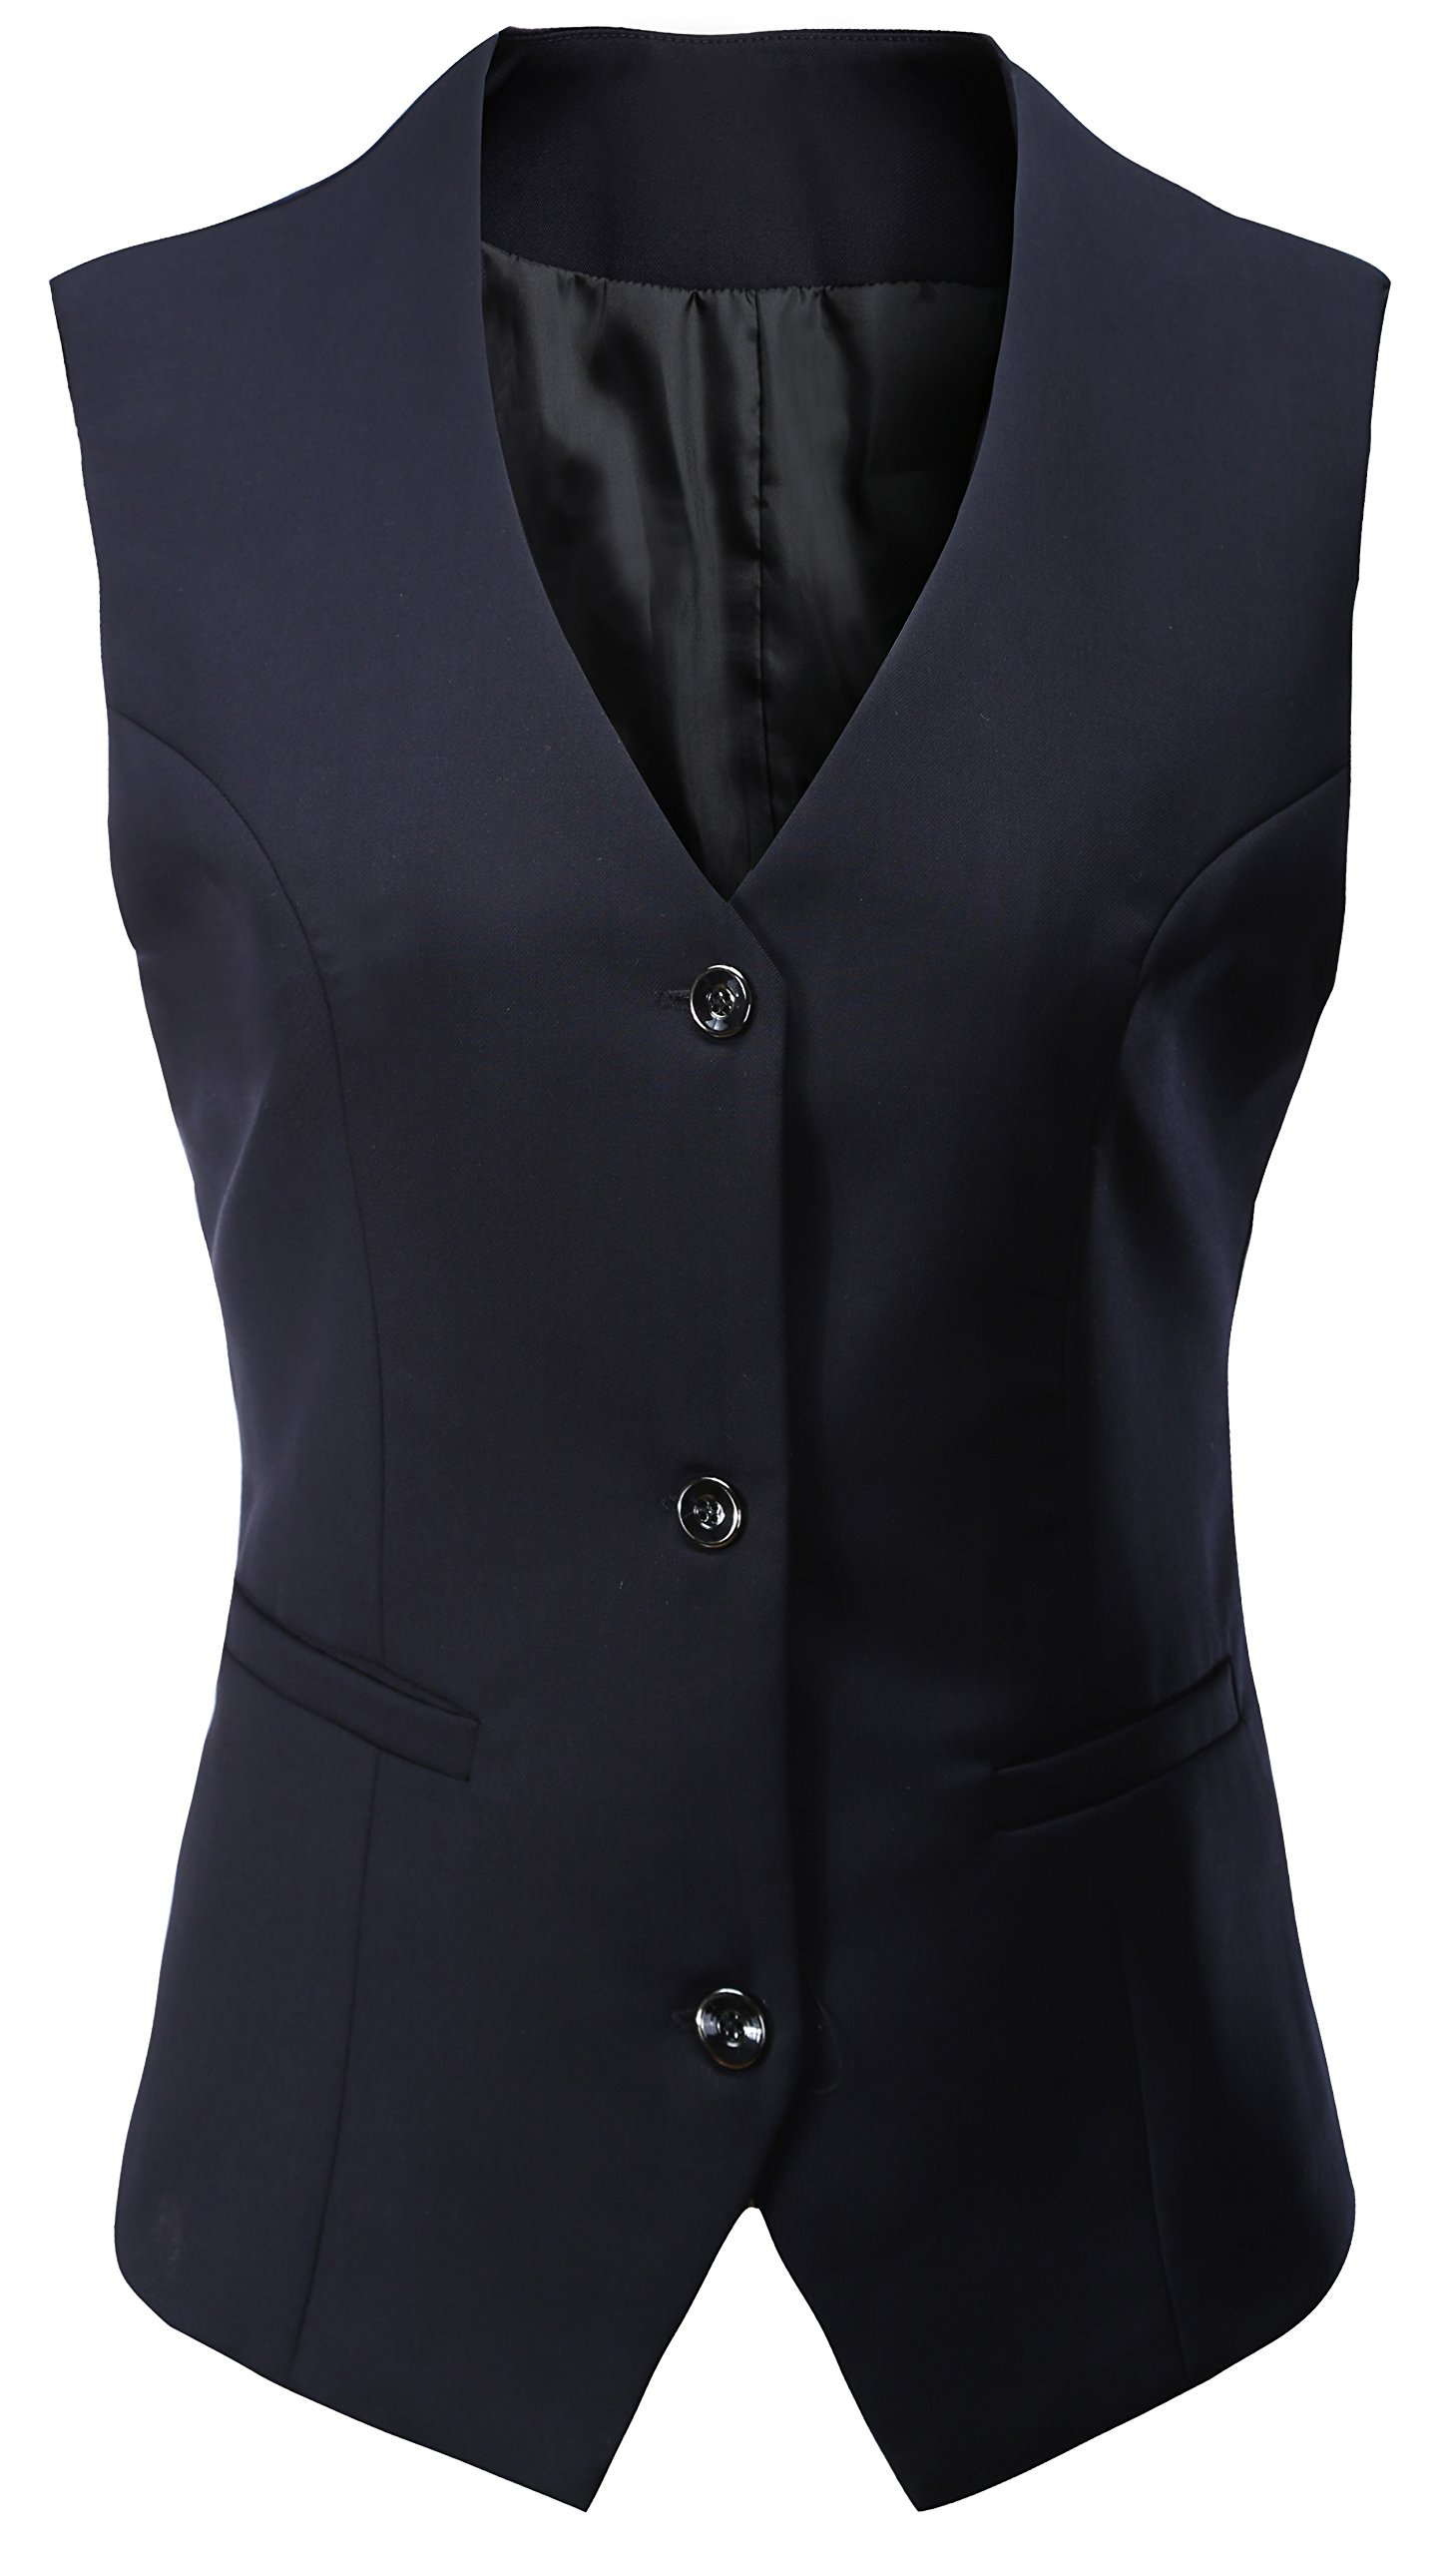 Vocni Women's V-Neck Sleeveless 3 Button Fully Lined Slim Fit Economy Dressy Suit Formal Vest Waistcoat,Blue,US XS (Fit Bust 30.3''-32.7''),Tag M